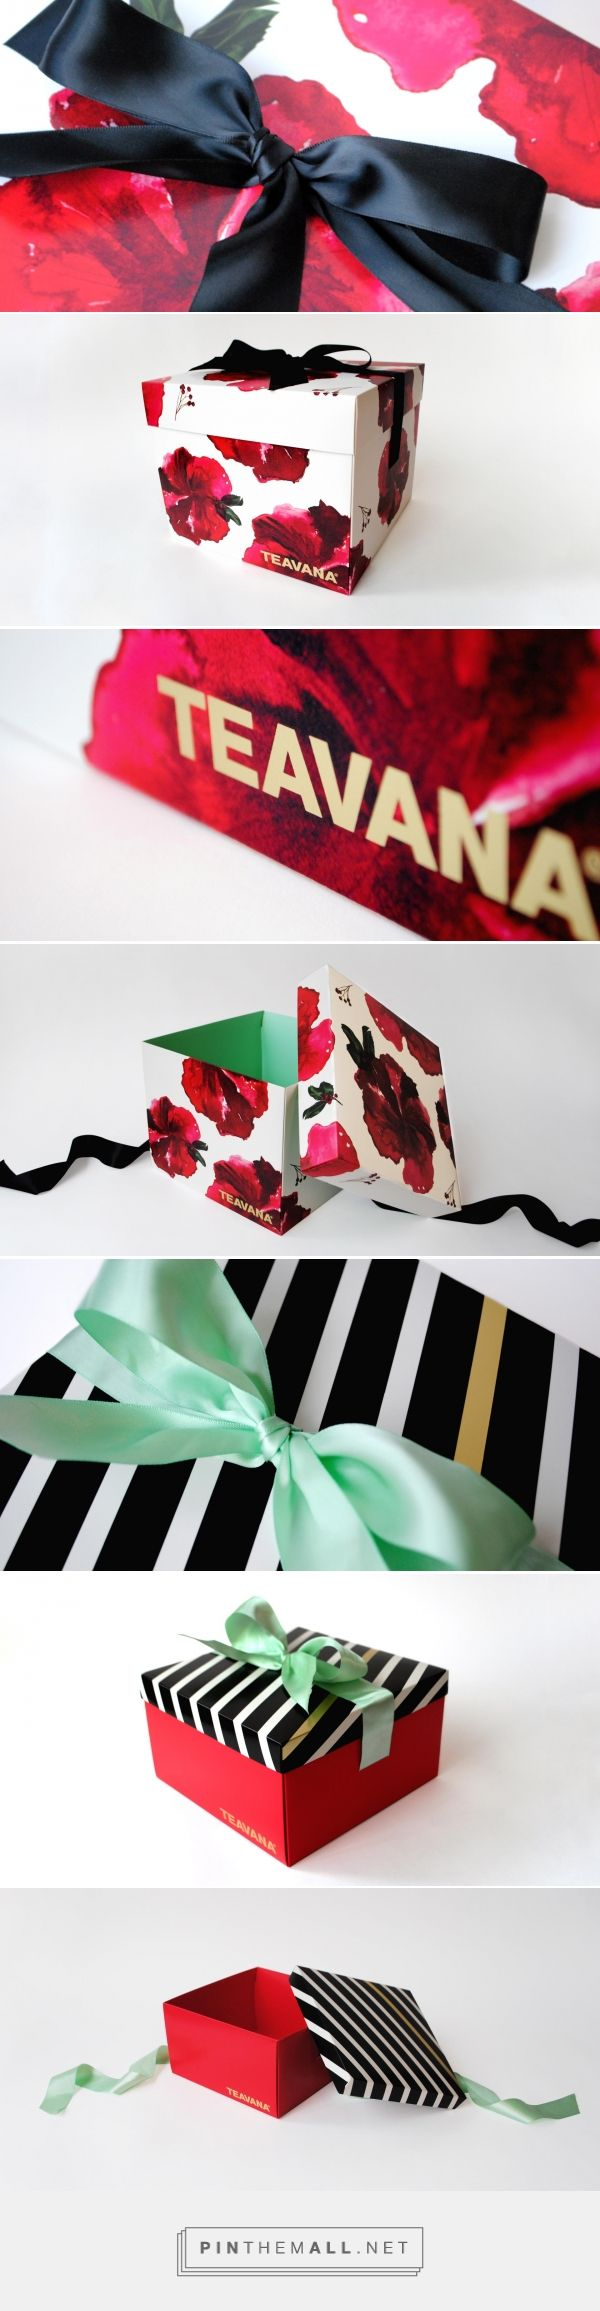 Teavana | Holiday Packaging Design | Creative Retail Packaging | crpkg.com…